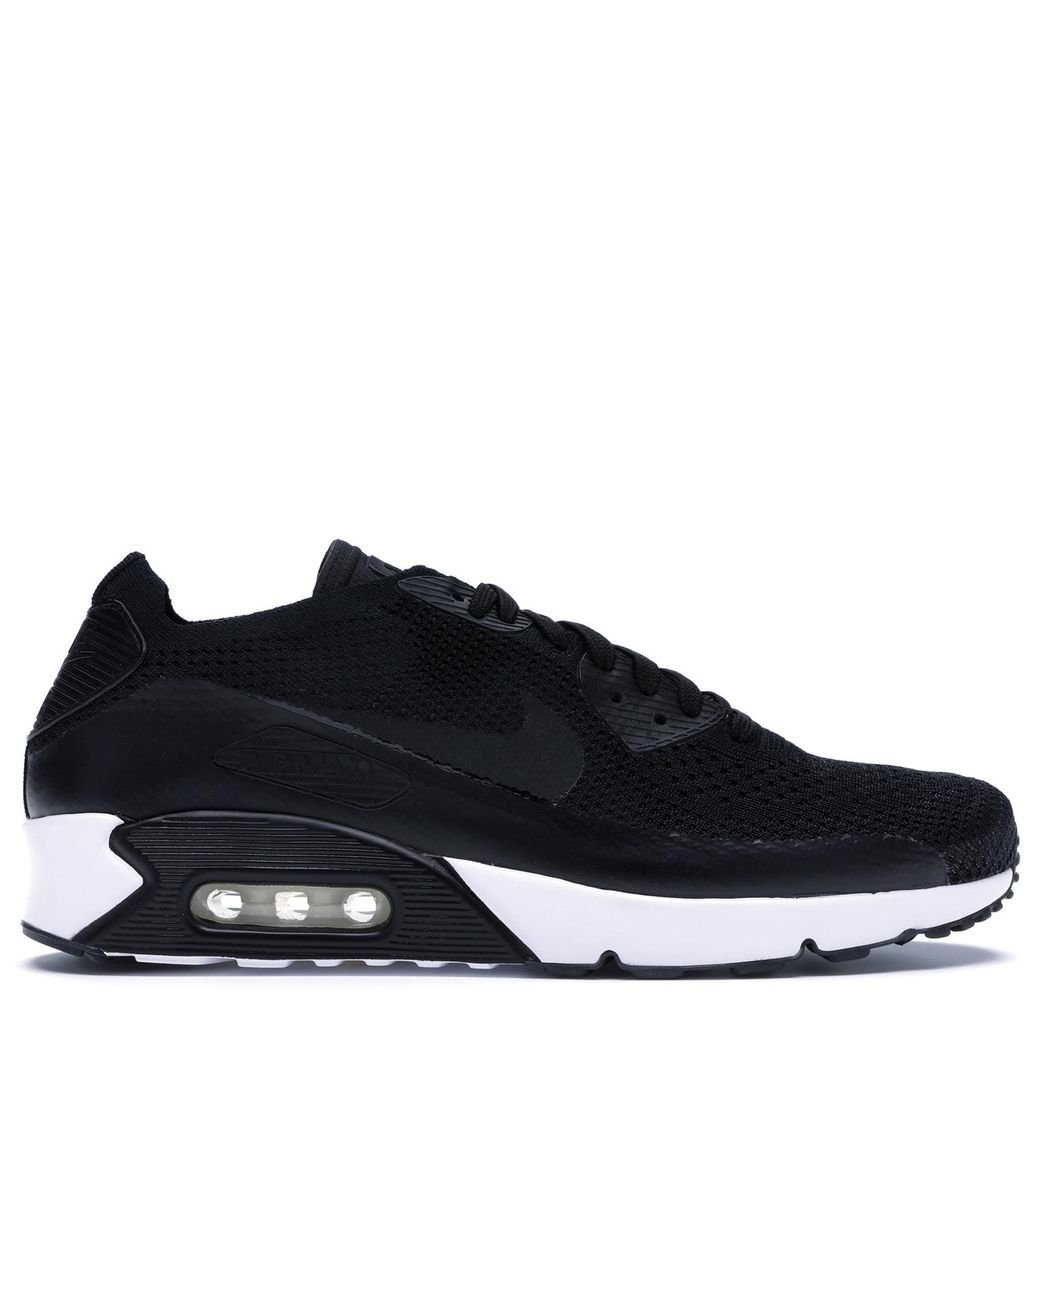 nike air max deluxe 2018 reflective WearTesters